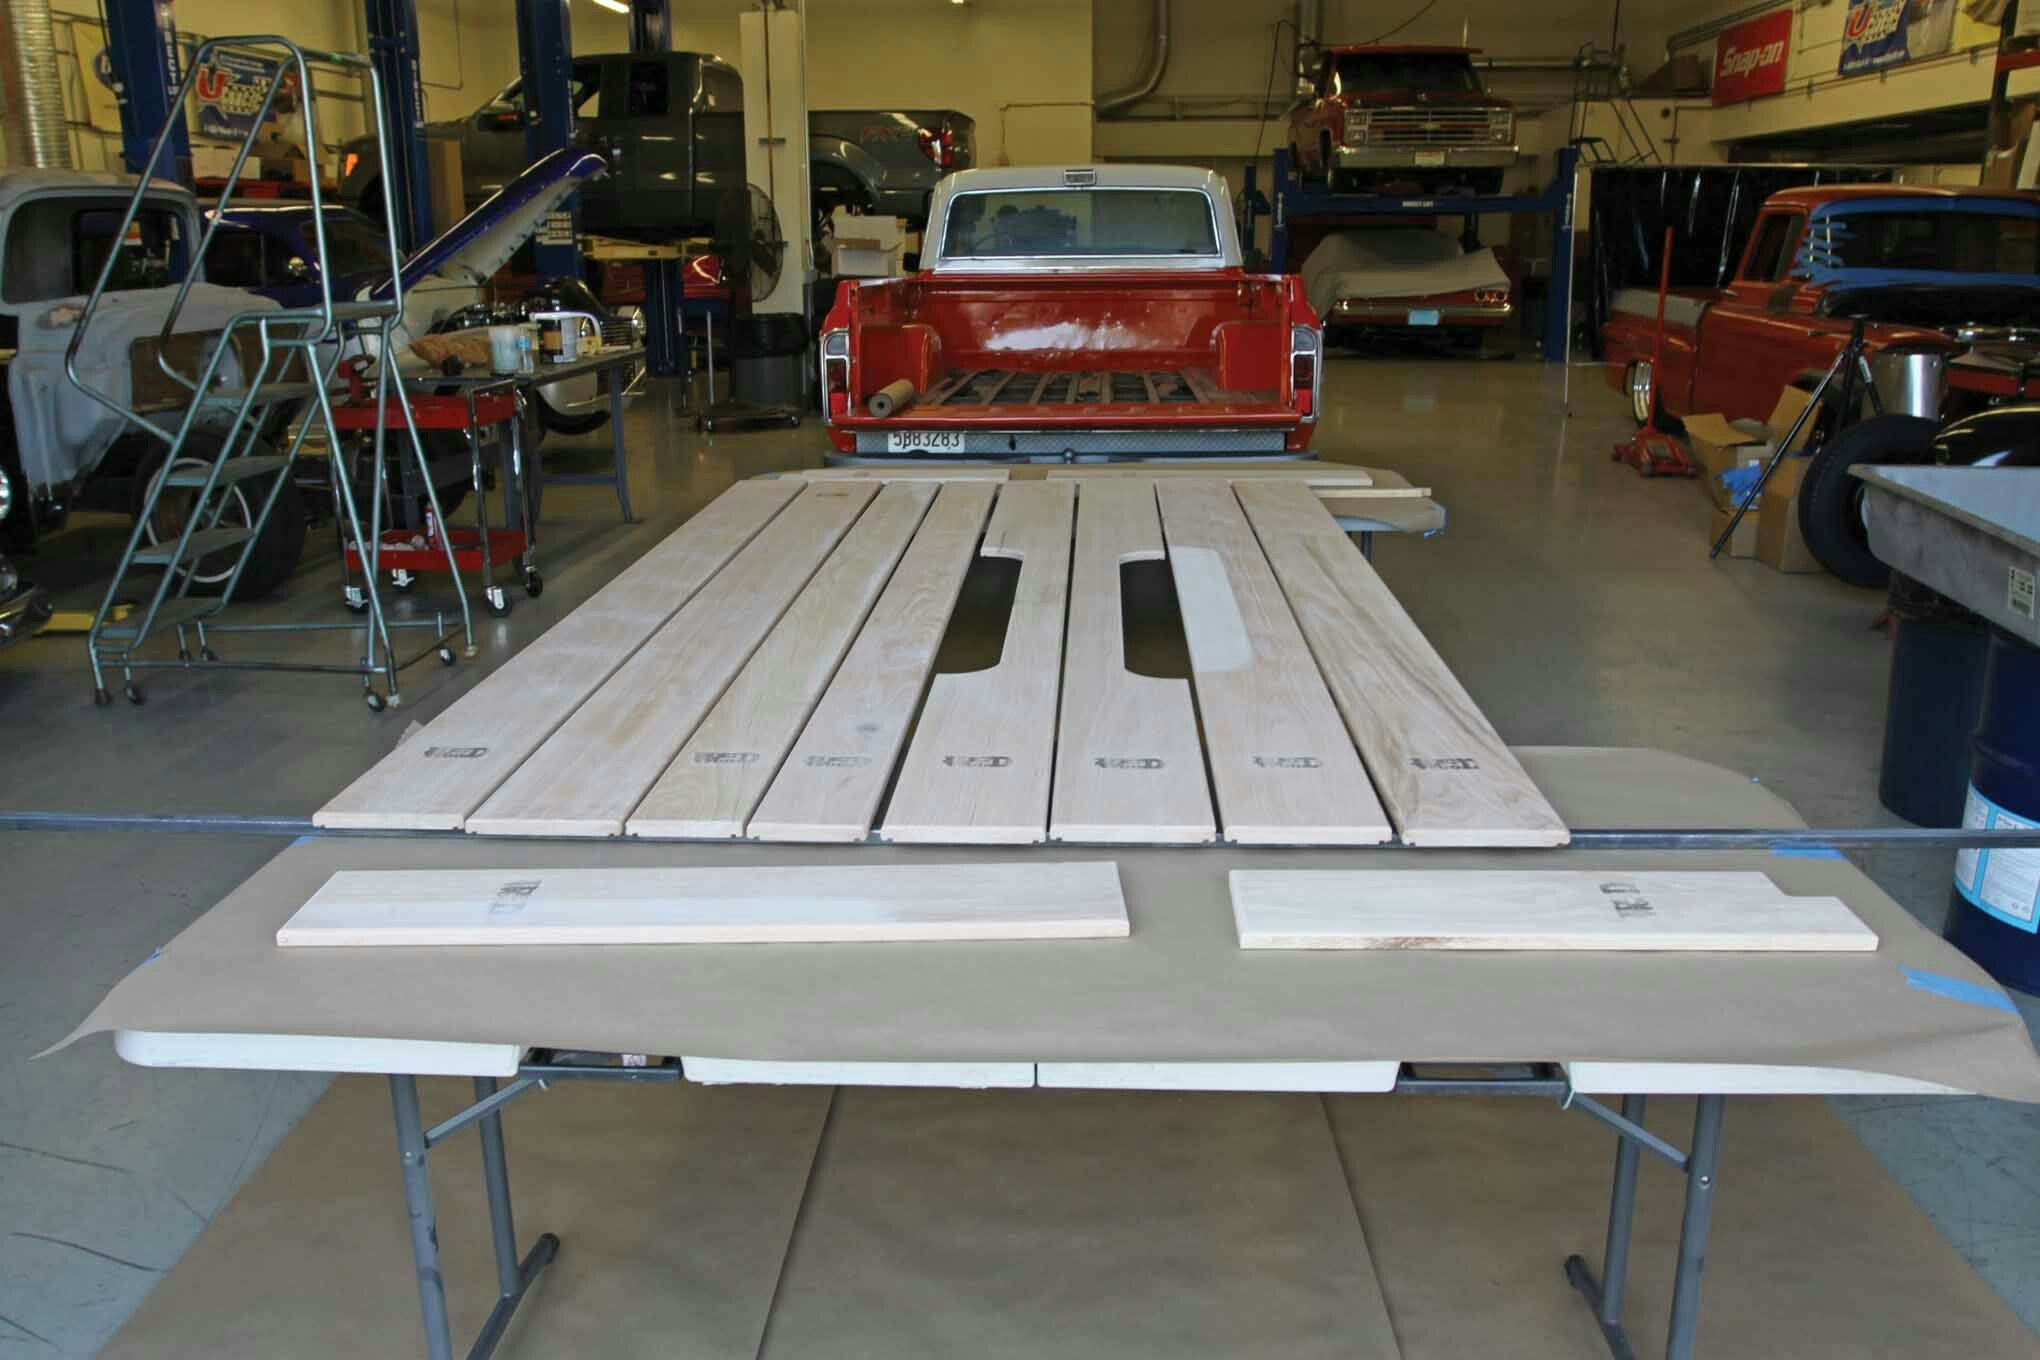 Pin by Memphis on C10 Box Pallet table, Picnic table, Table